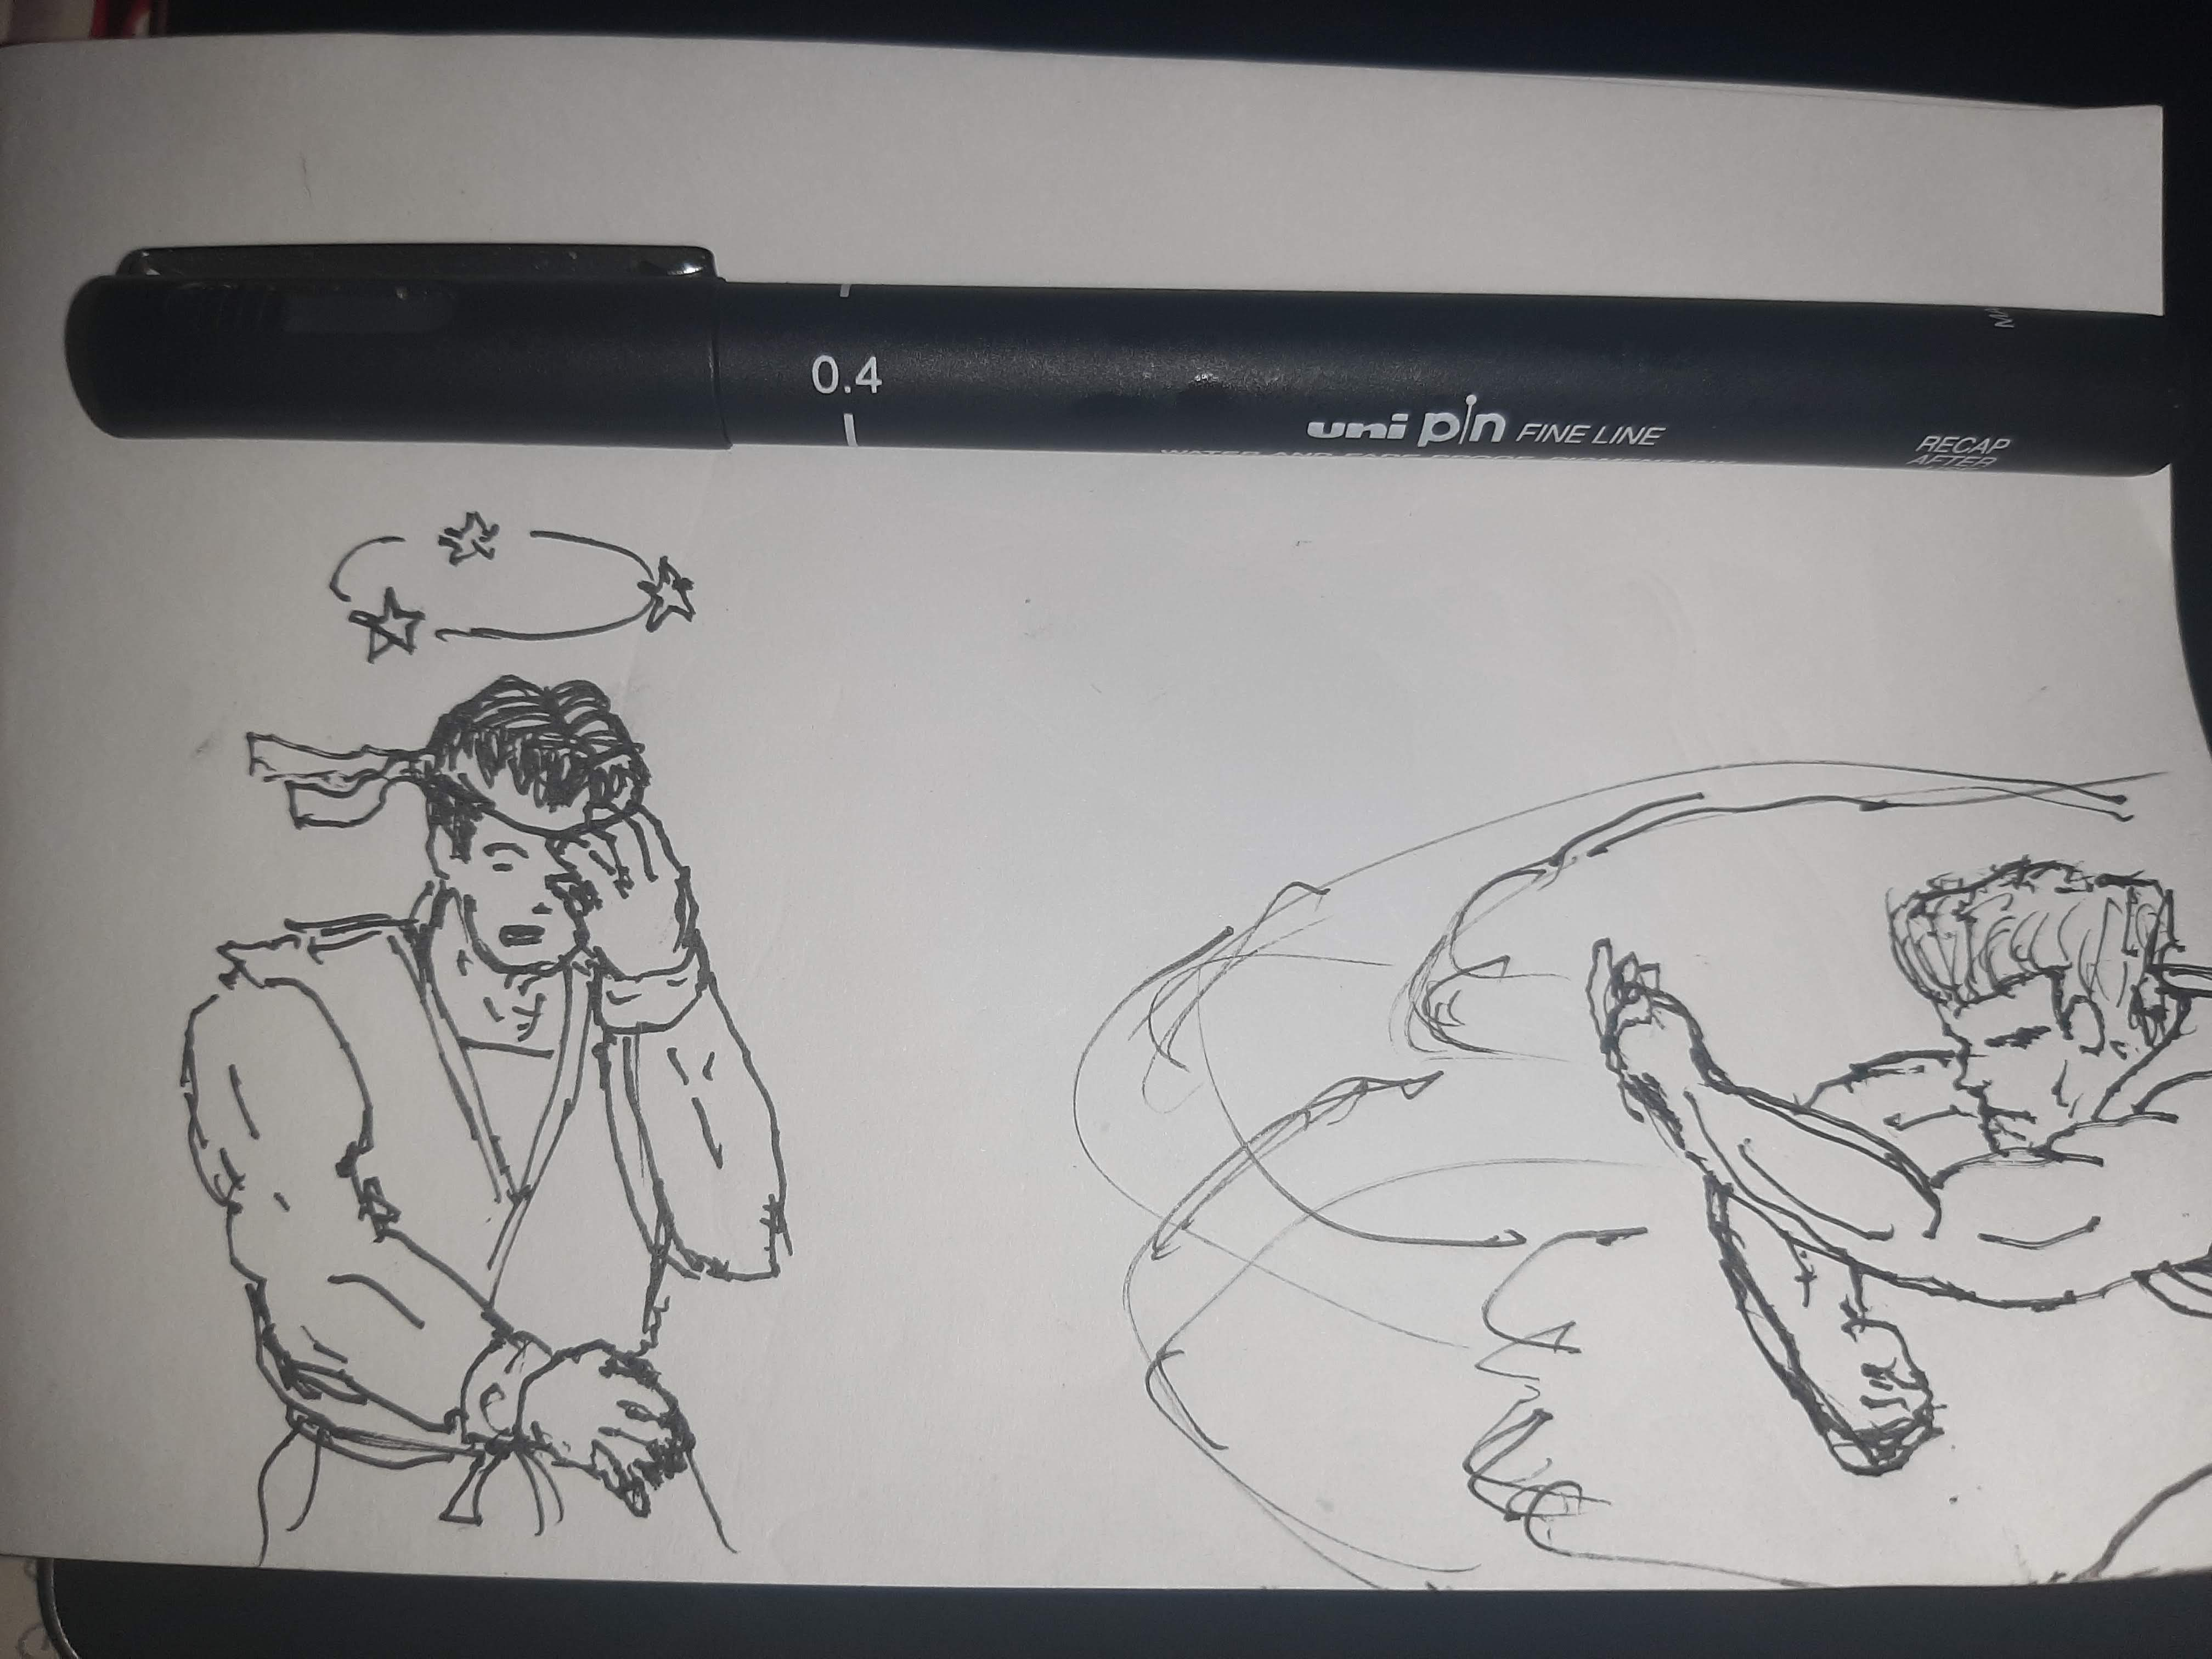 Inktober 2020 day 19: DIZZY I will admit I was being kind of lazy here. Official prompt list: https://inktober.com/rules